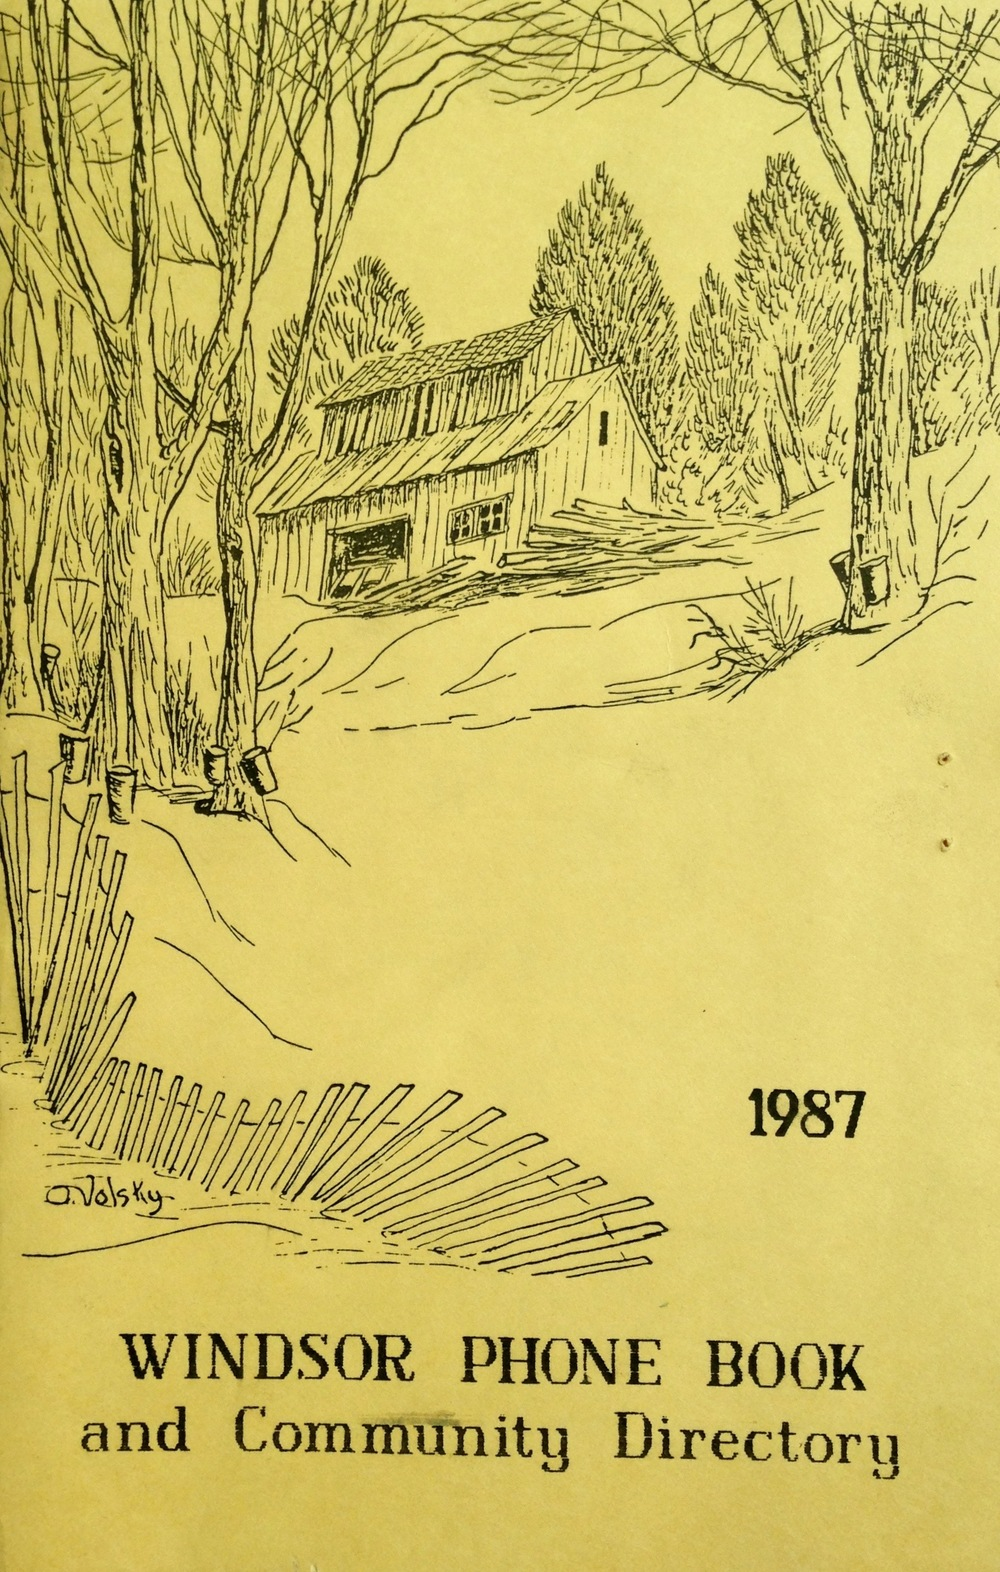 Inaugural Windsor Phone Book, 1987                          Cover art by Olive Volsky